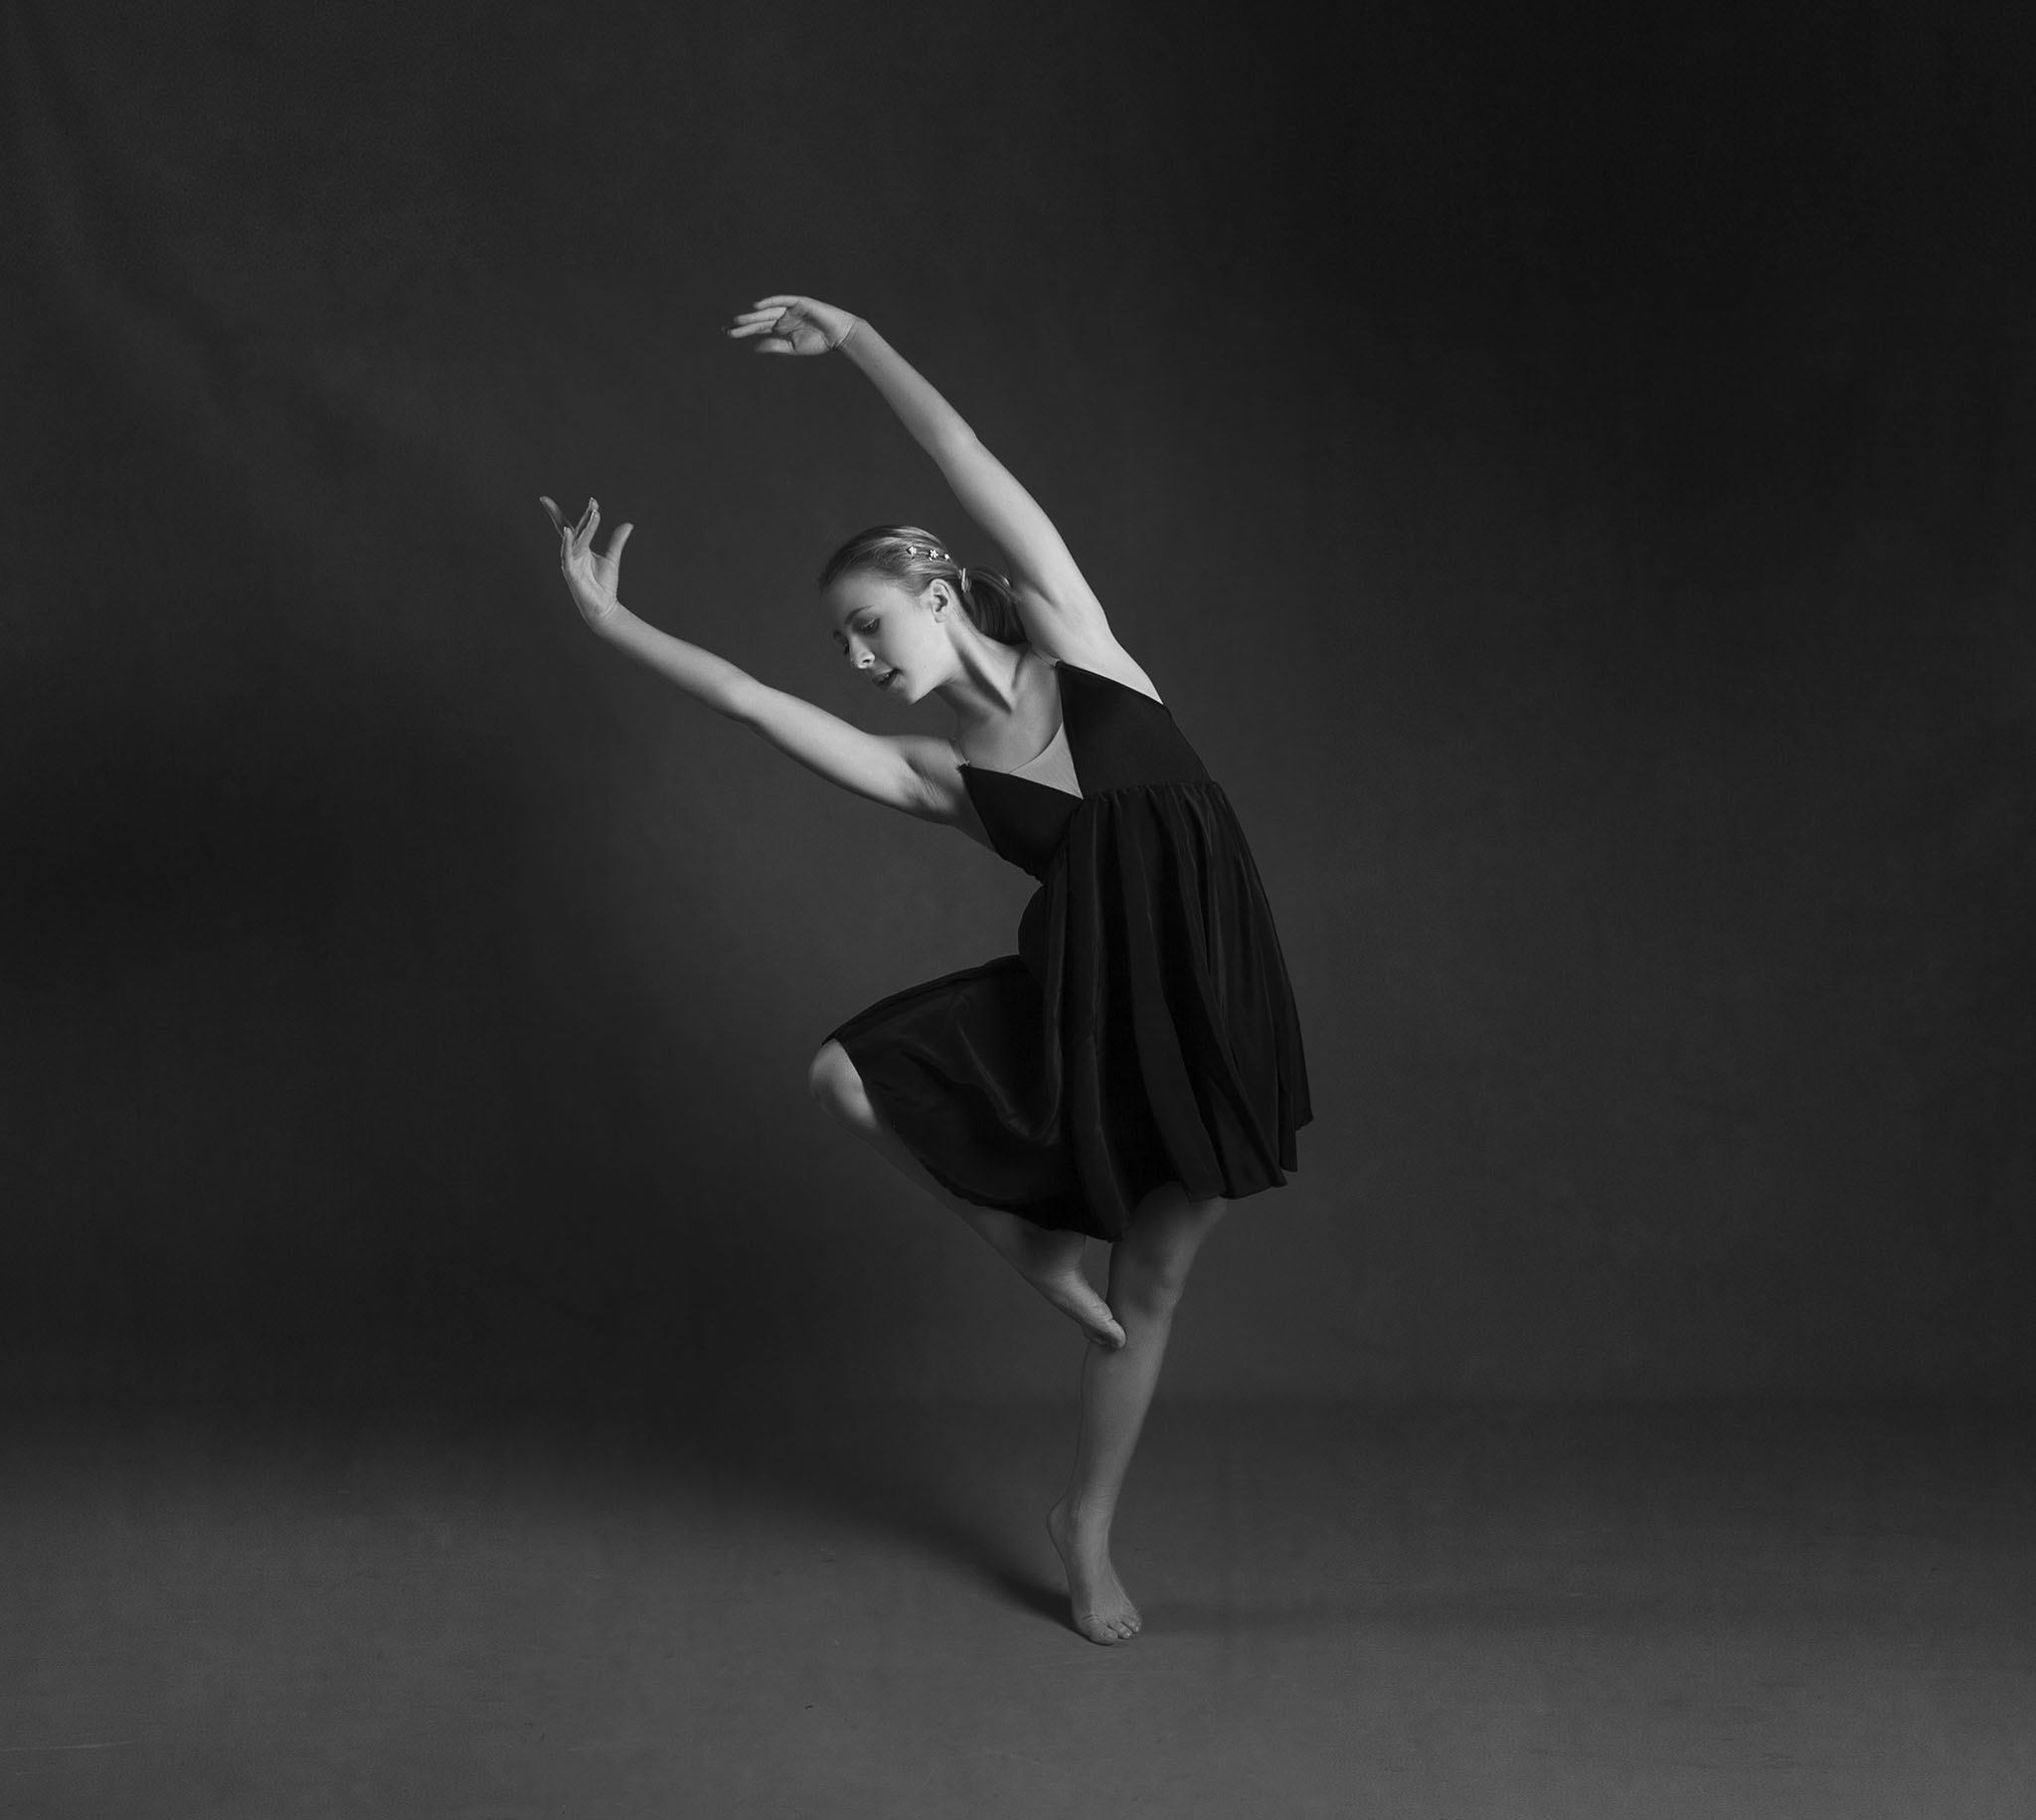 elizabethgphotography_kingslangley_hertfordshire_fineart_dance_photography_01.jpg